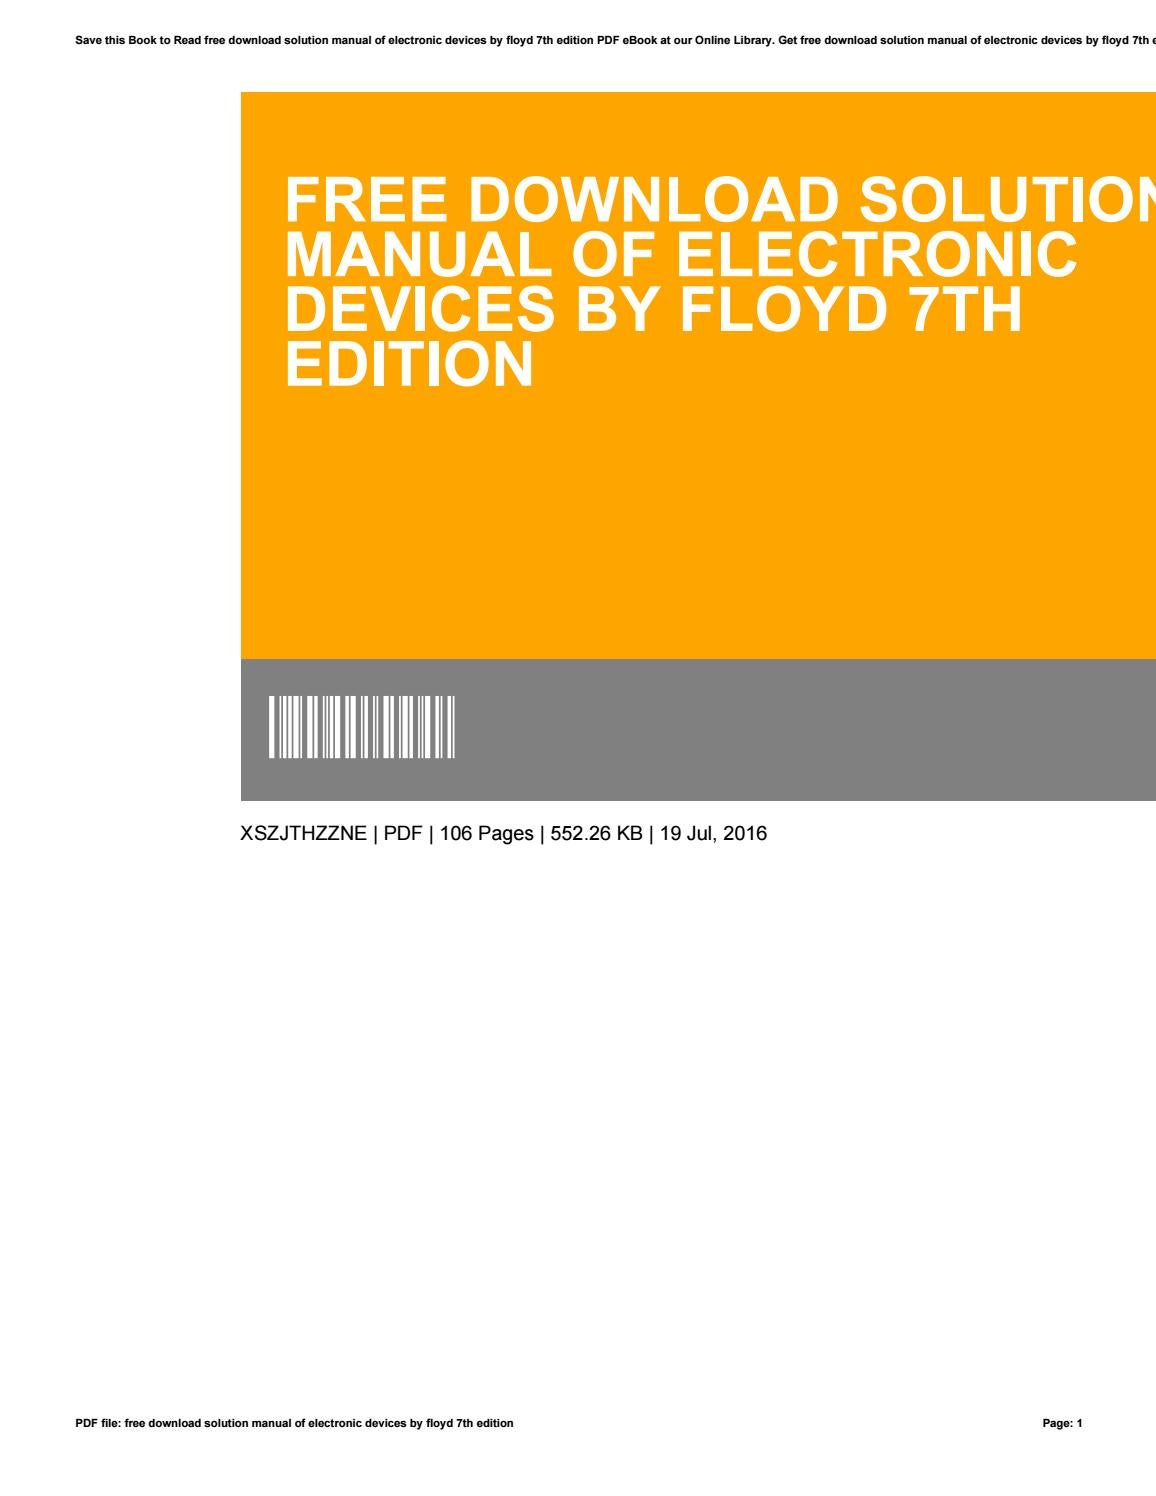 Free download solution manual of electronic devices by floyd 7th edition by  PearlieJohns4189 - issuu